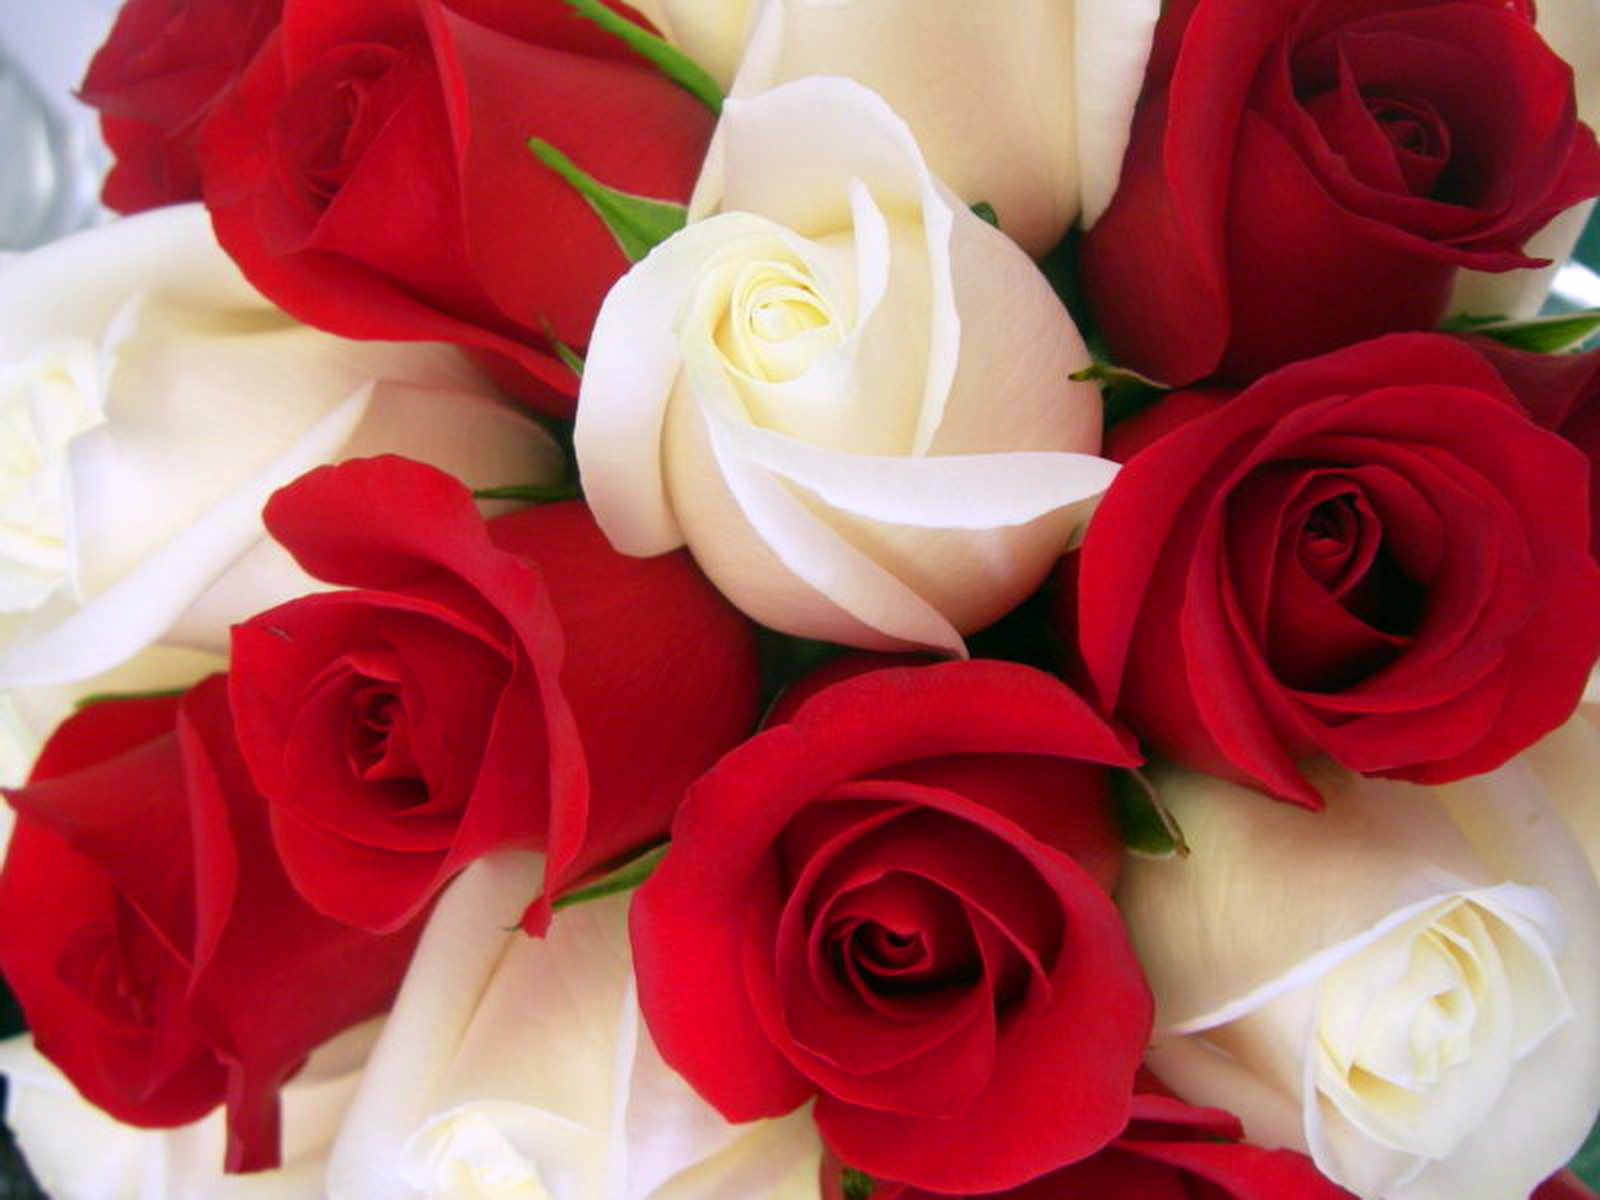 Beautiful rose images and wallpapers 5